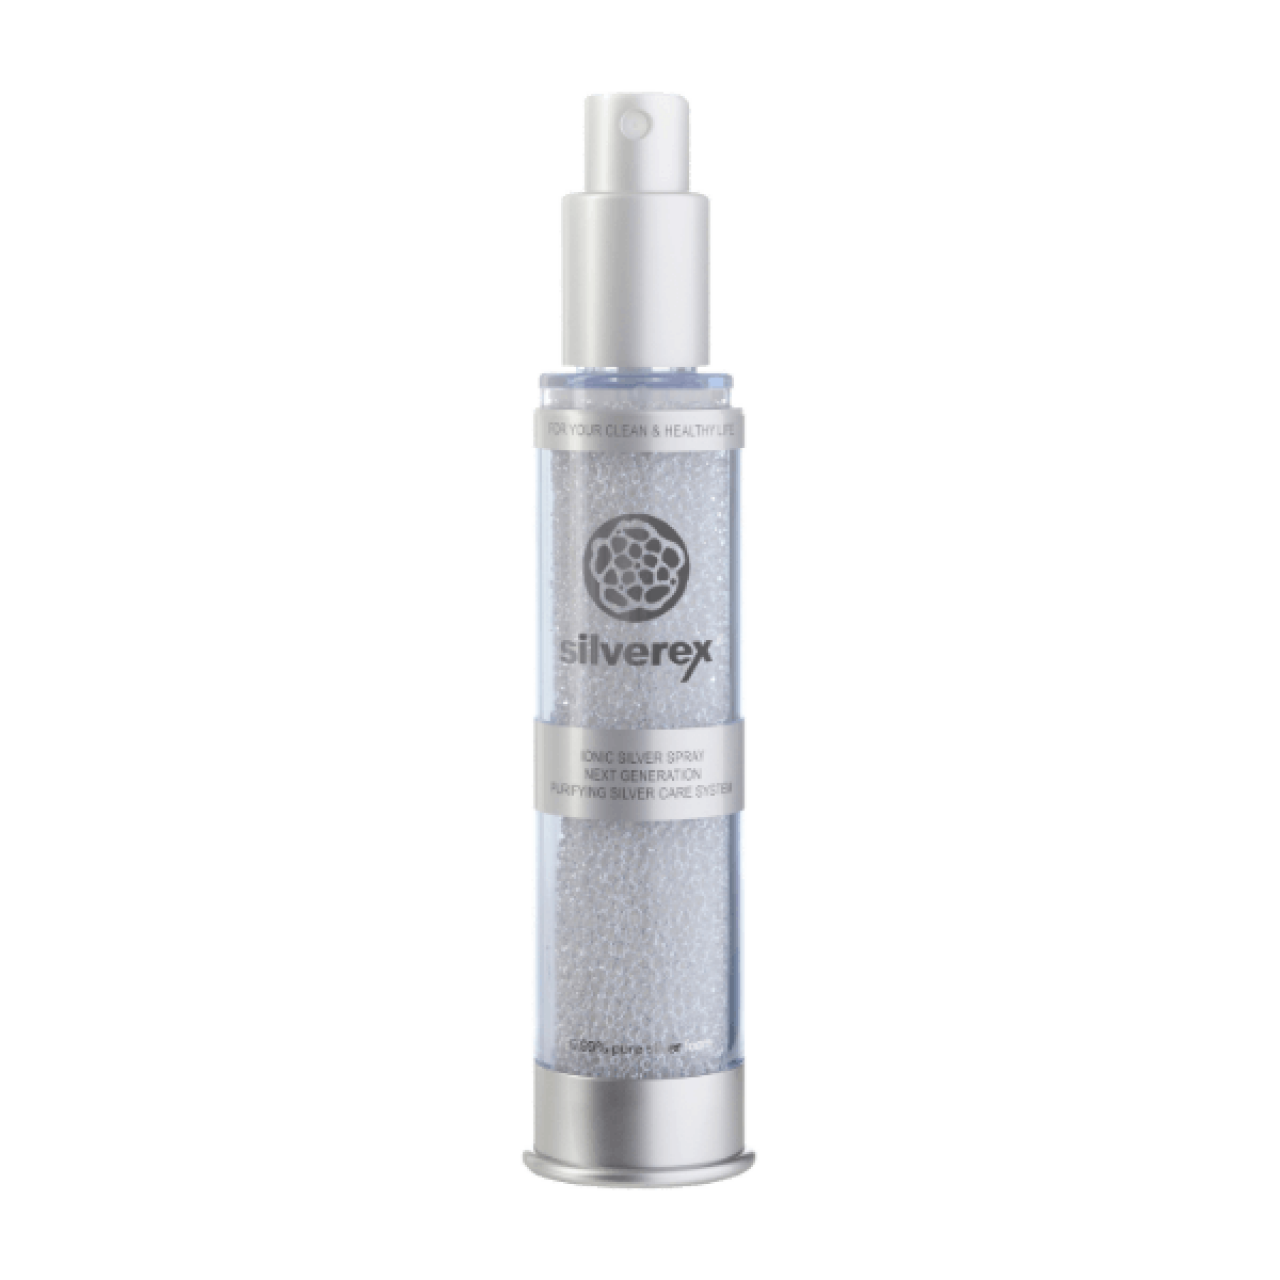 IONIC SILVER SPRAY